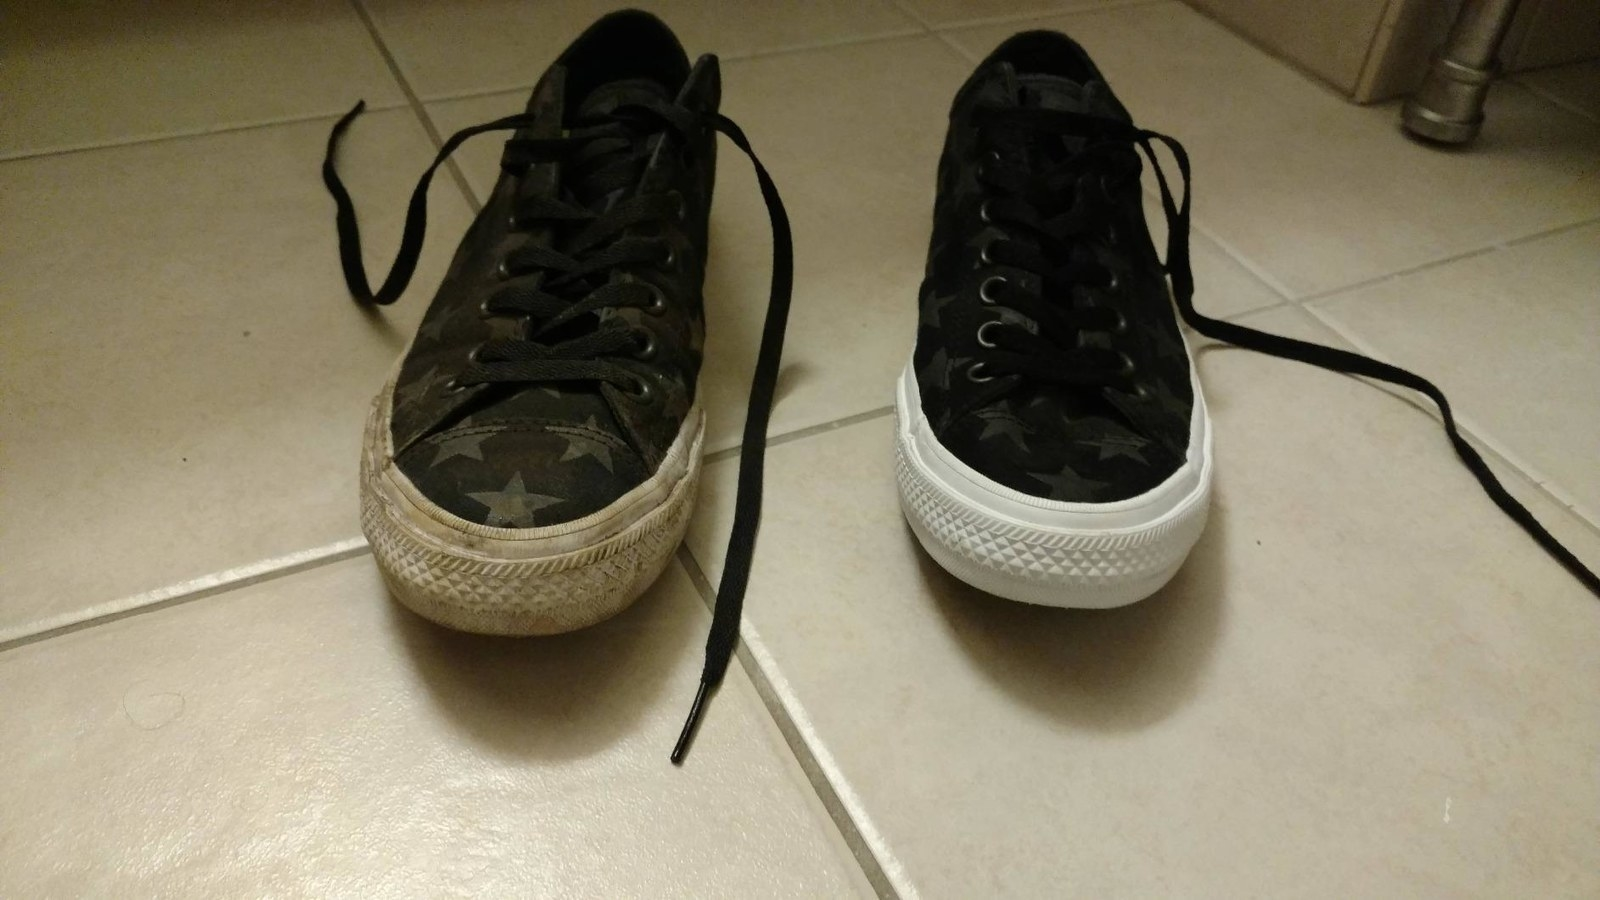 A reviewer's sneakers, one dirty and discolored, the other so clean it looks new